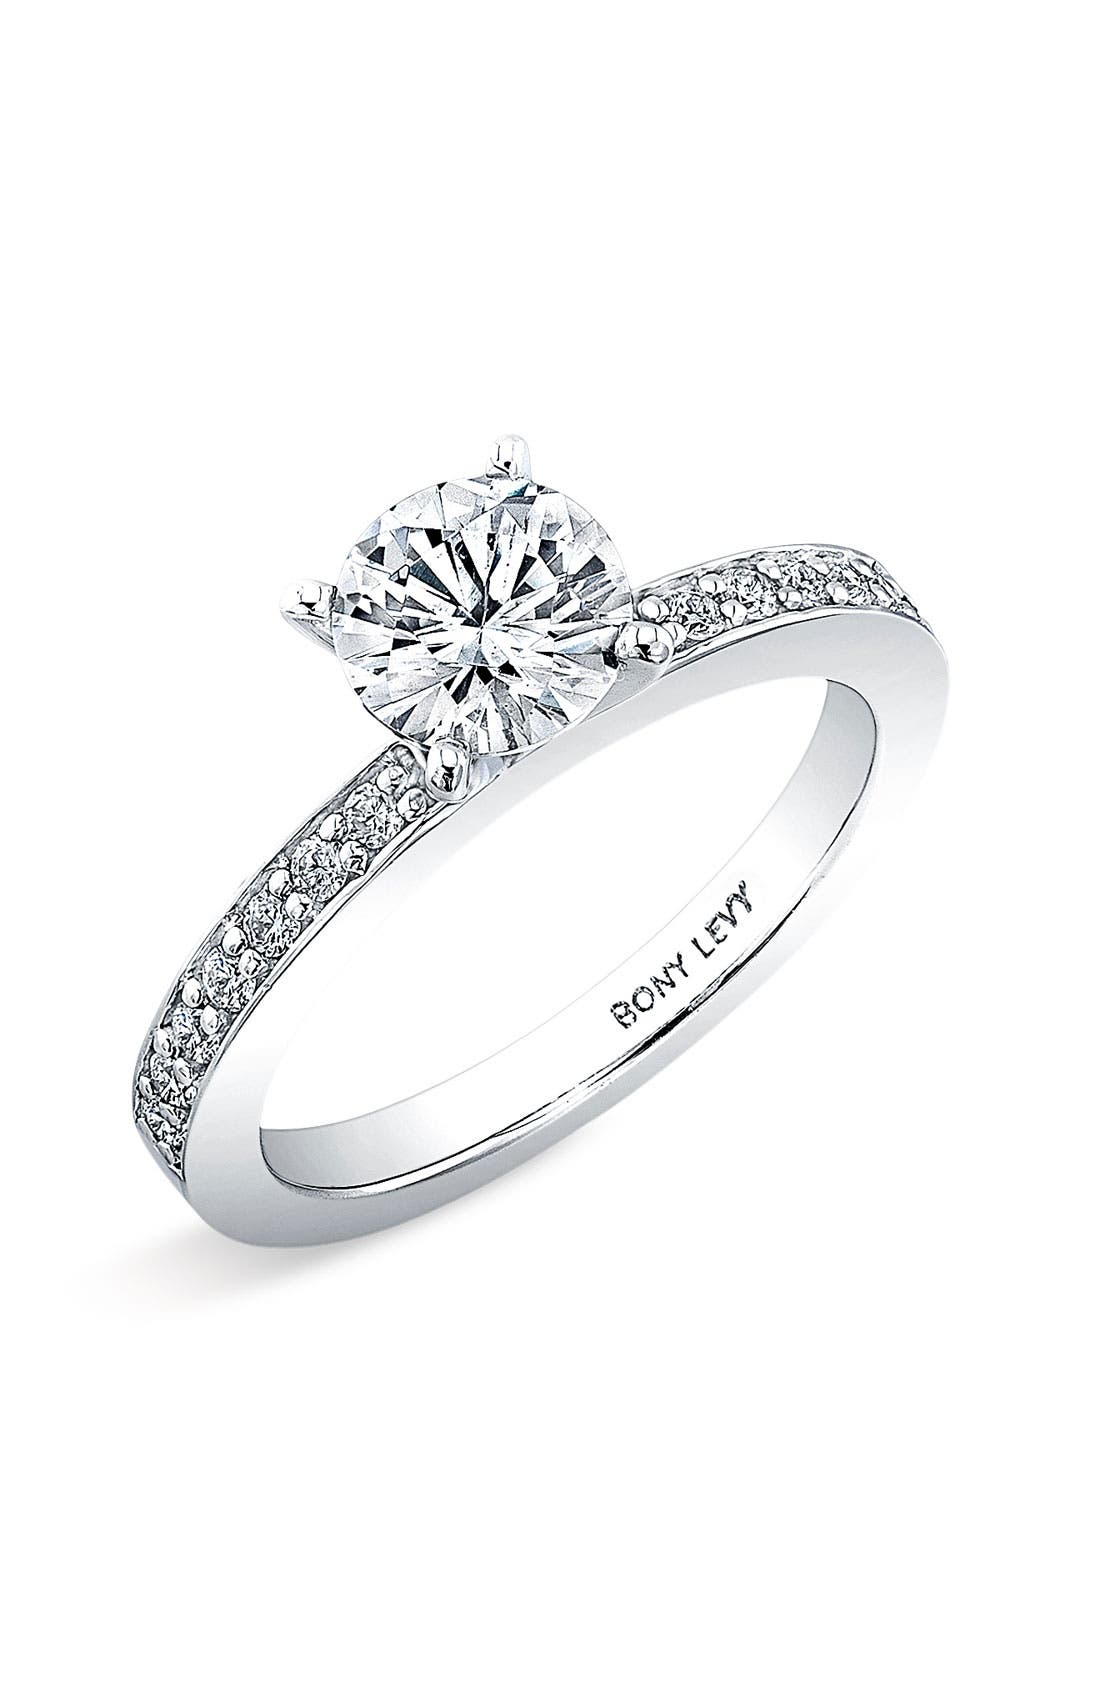 Channel Set Diamond Engagement Ring Setting,                             Main thumbnail 1, color,                             White Gold